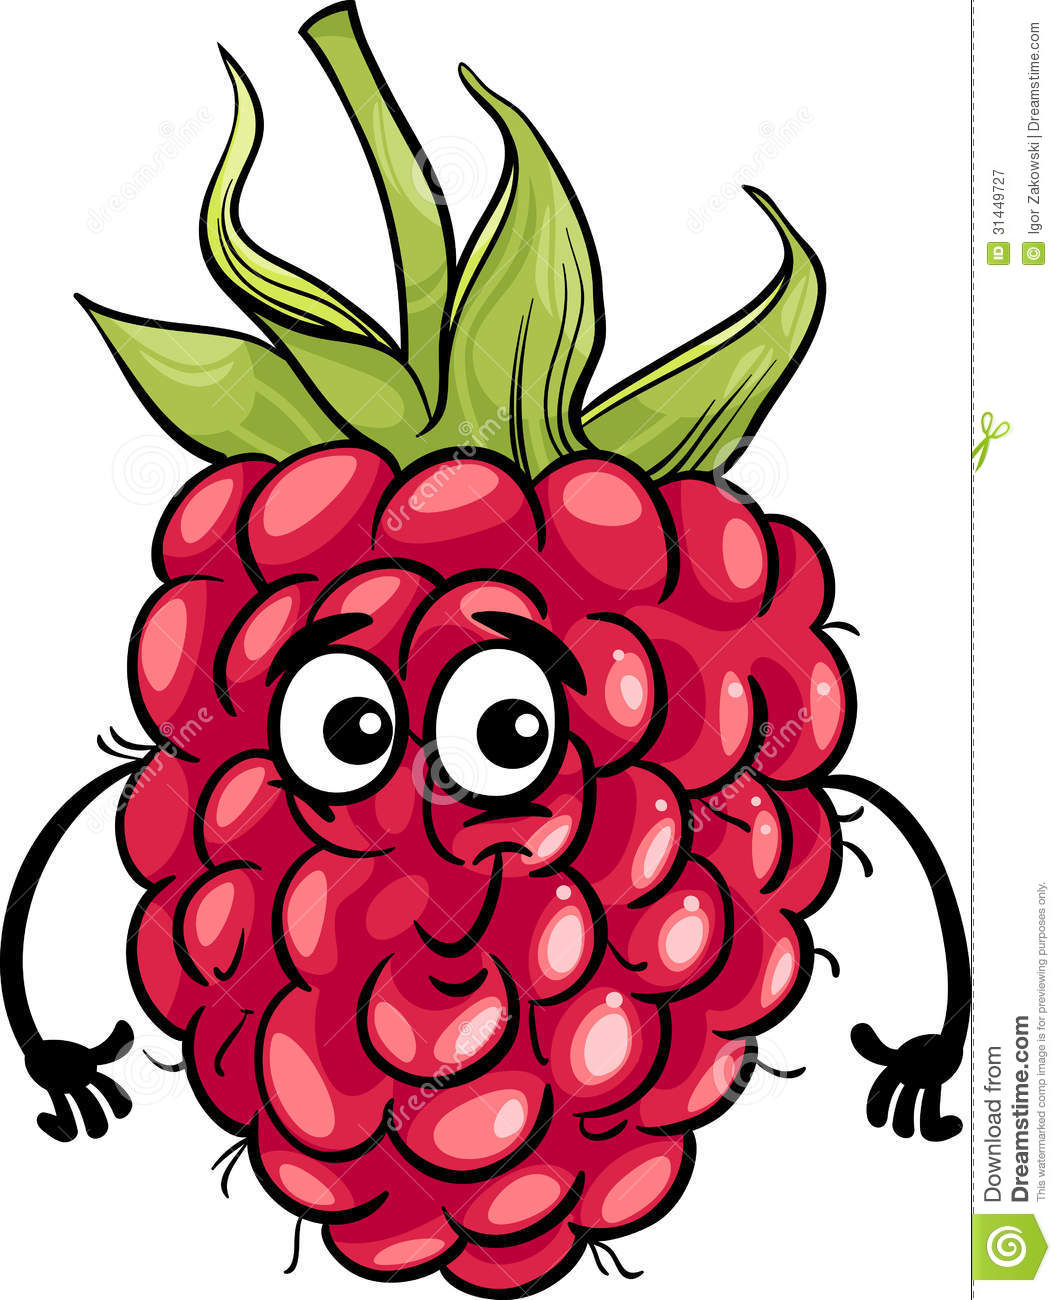 Royalty Free Stock Photography Funny Raspberry Fruit Cartoon Illustration Food  ic Character Image31449727 on banana cartoon character